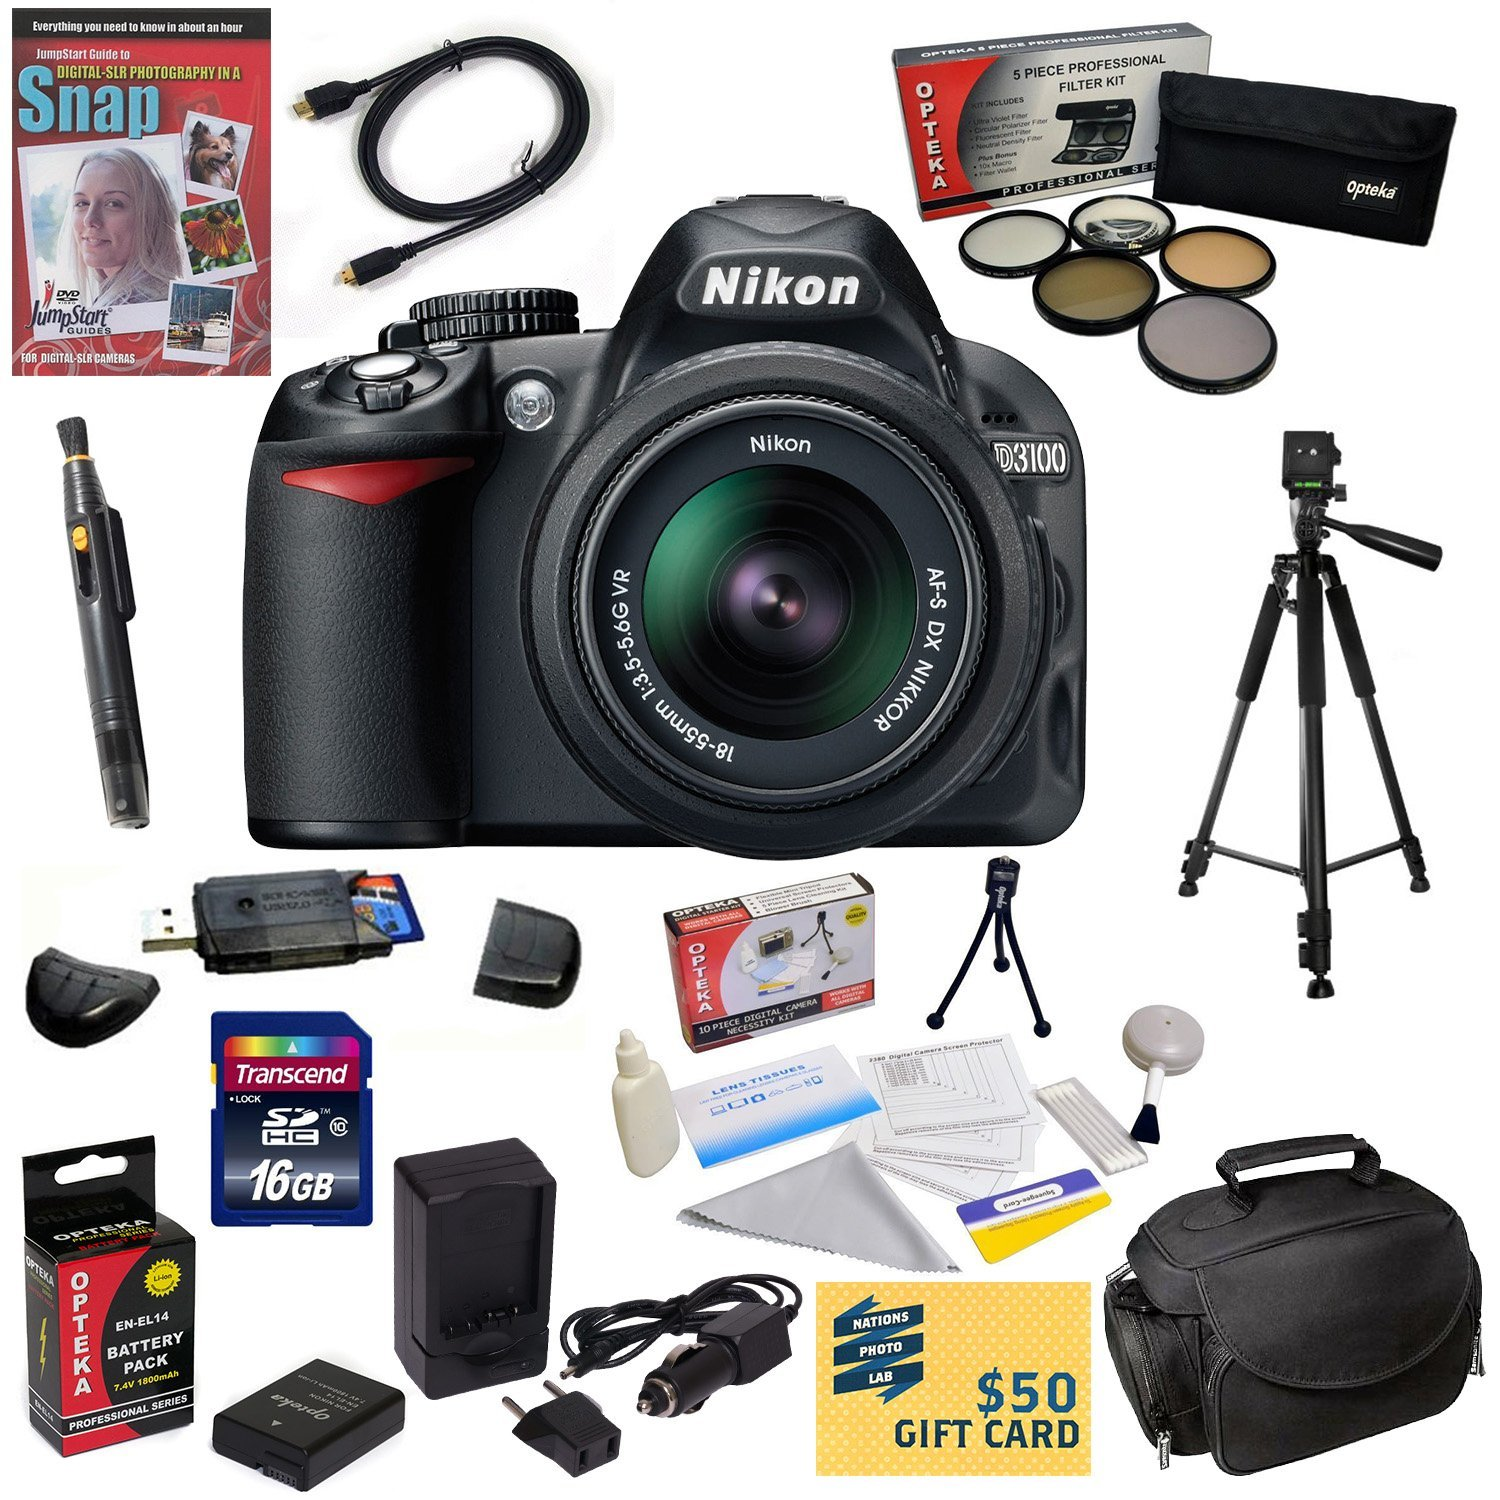 Nikon D3100 Digital SLR Camera with 18-55mm NIKKOR VR Lens With 16GB Memory Card, Card Reader, EN-EL14, Charger, 5 Piece Filter Kit, HDMI Cable, Case, Tripod, Lens Pen, DVD, $50 Gift Card & More